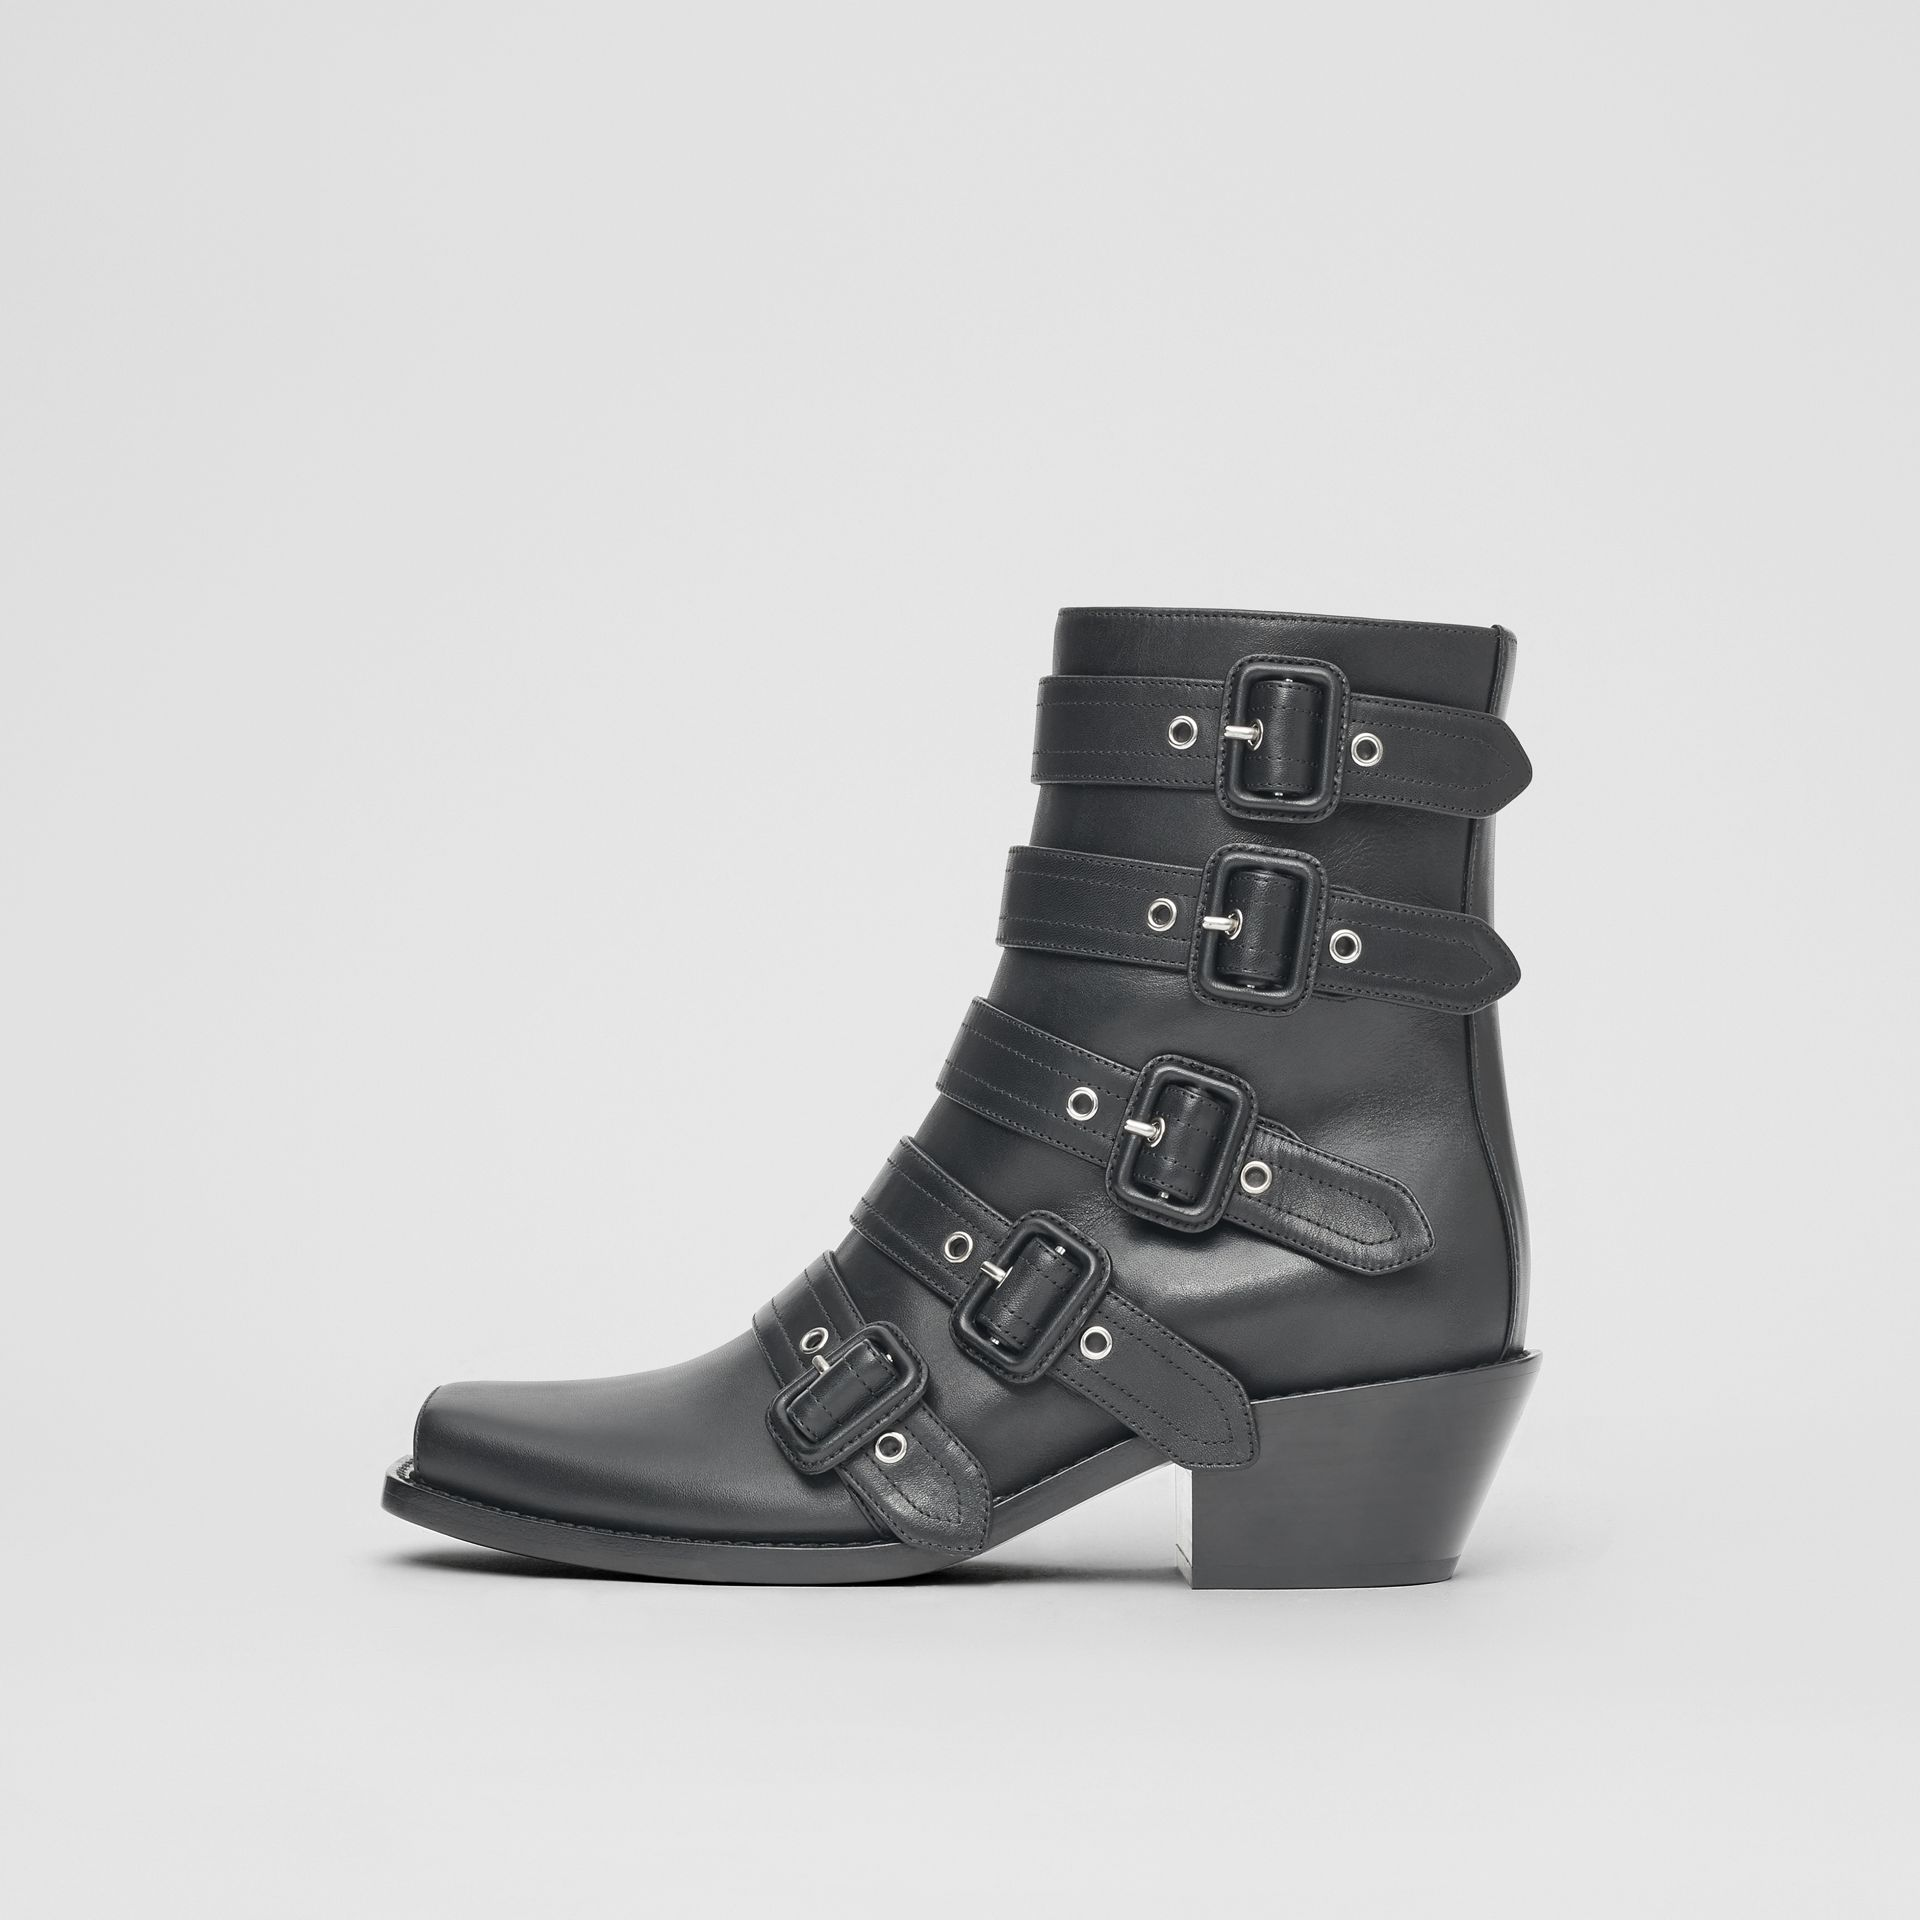 Buckled Leather Peep-toe Ankle Boots in Black - Women | Burberry - gallery image 6